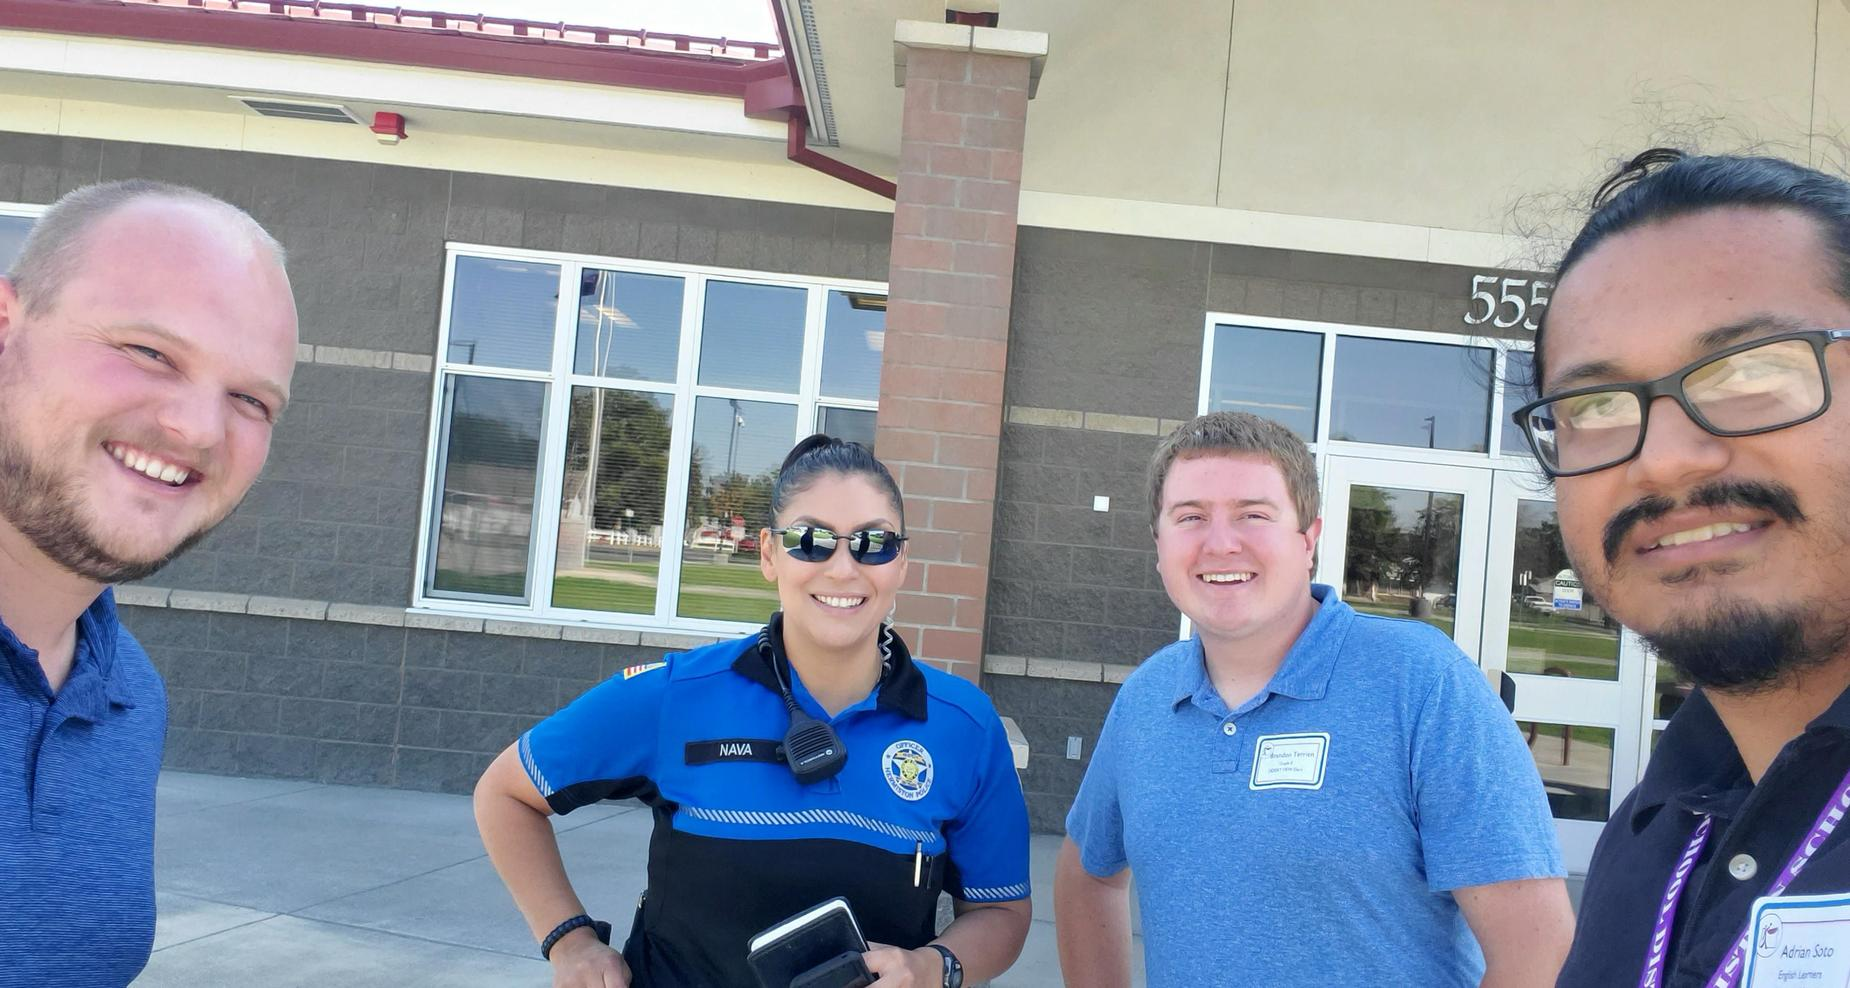 New teachers and Officer Nava at West Park.